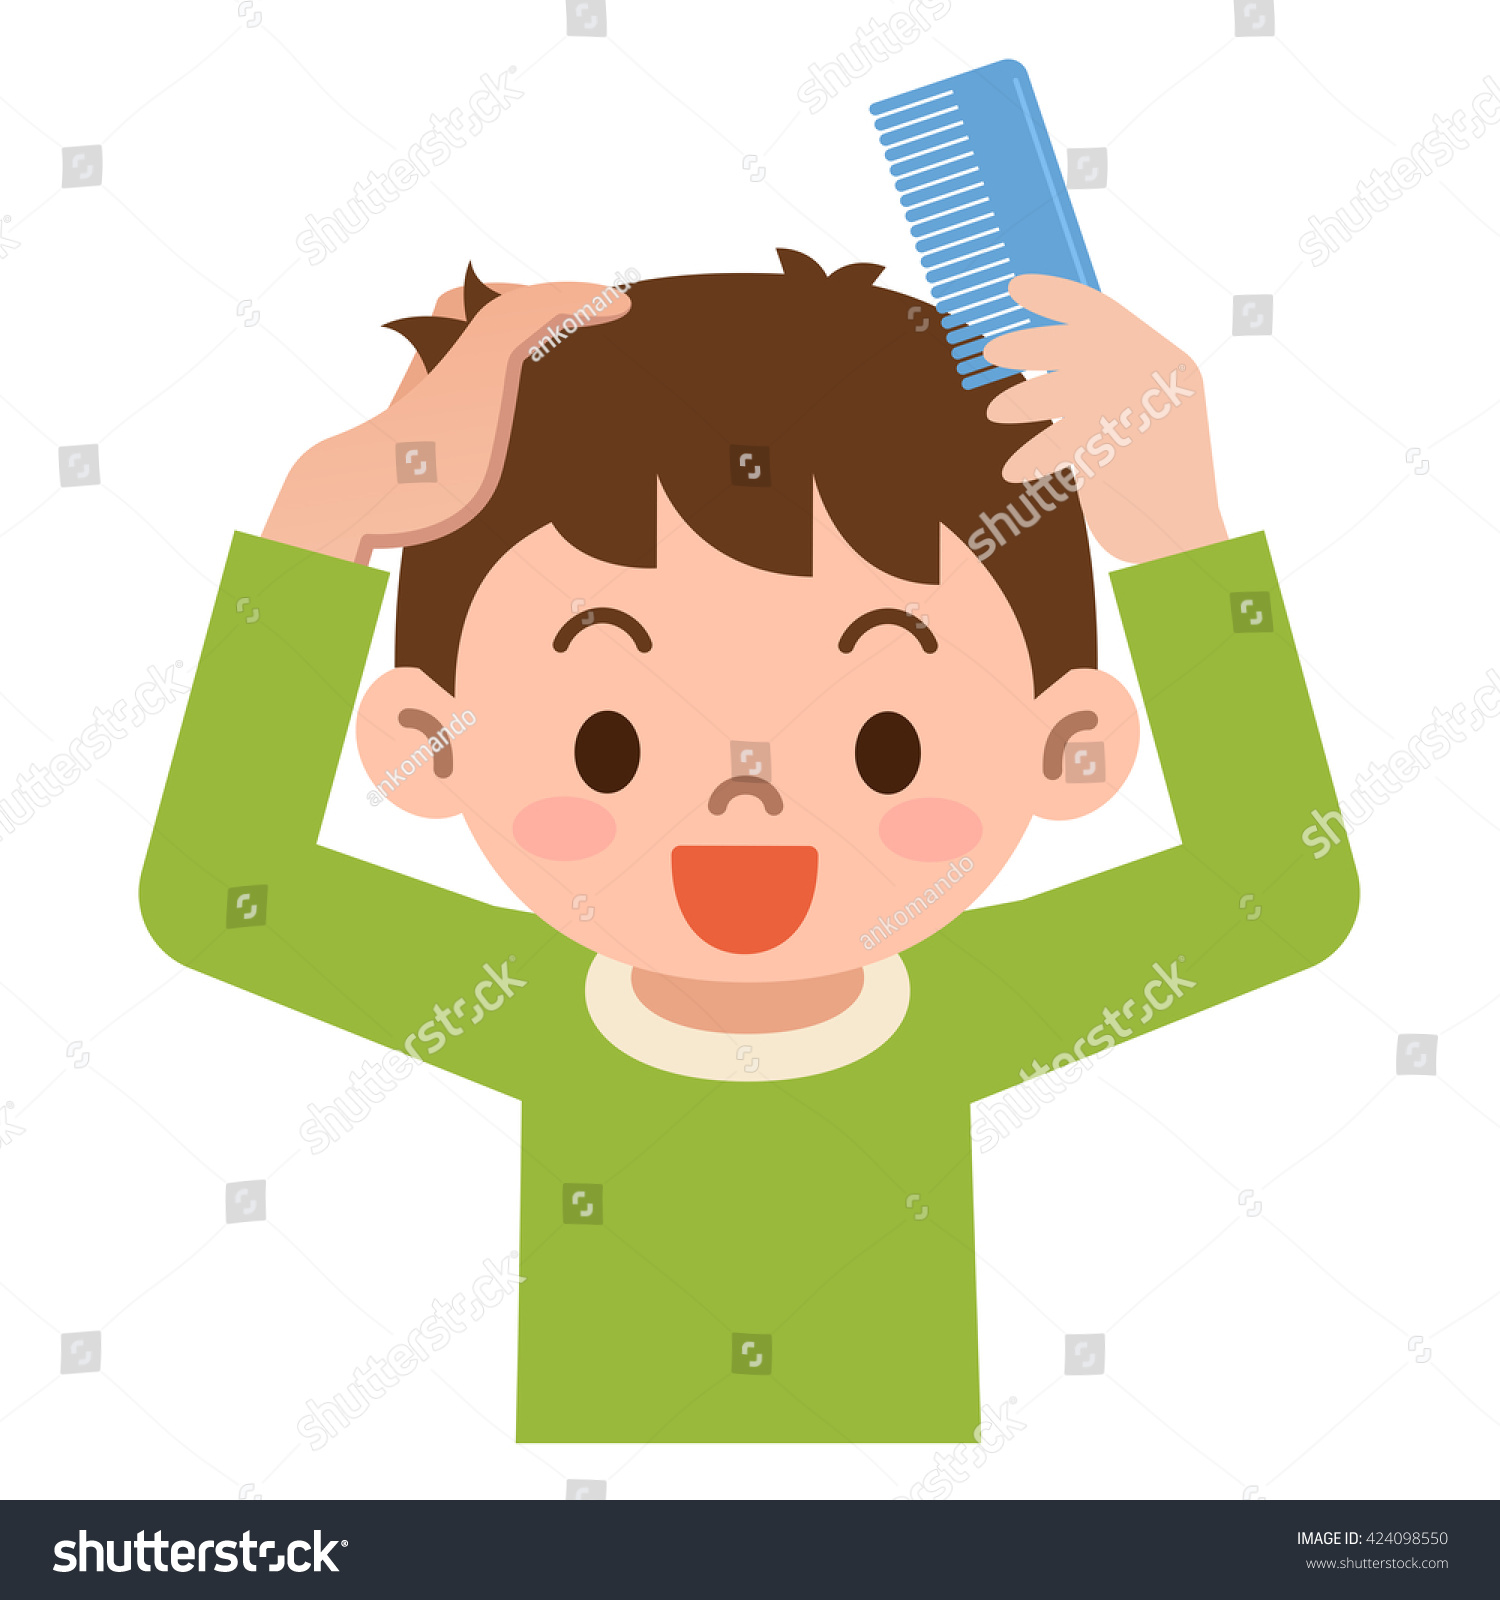 Comb clipart combed hair. Combing station